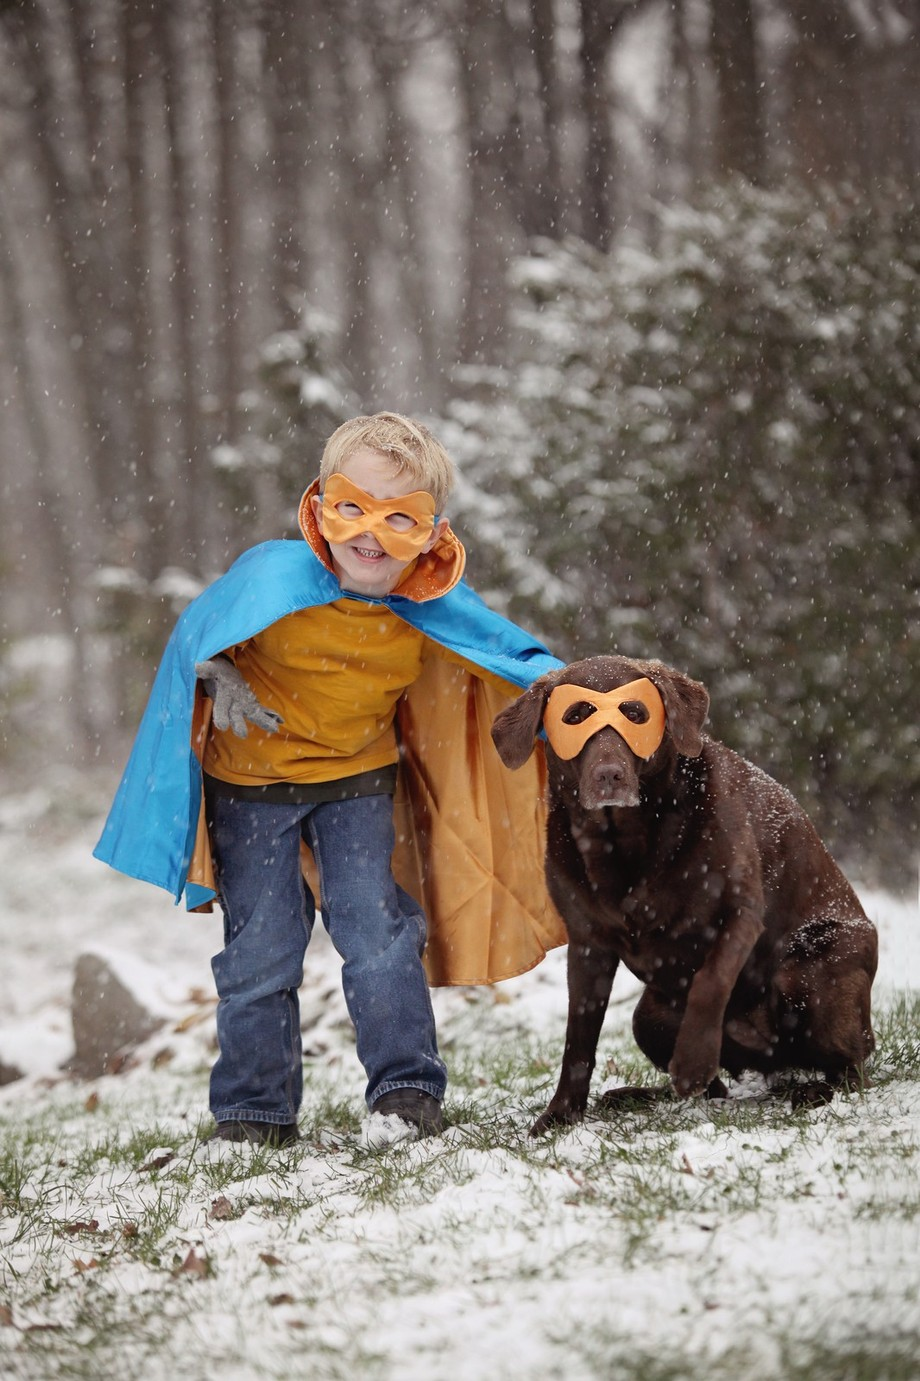 Jacob&Jersey by kimduncanperron - Children and Animals Photo Contest